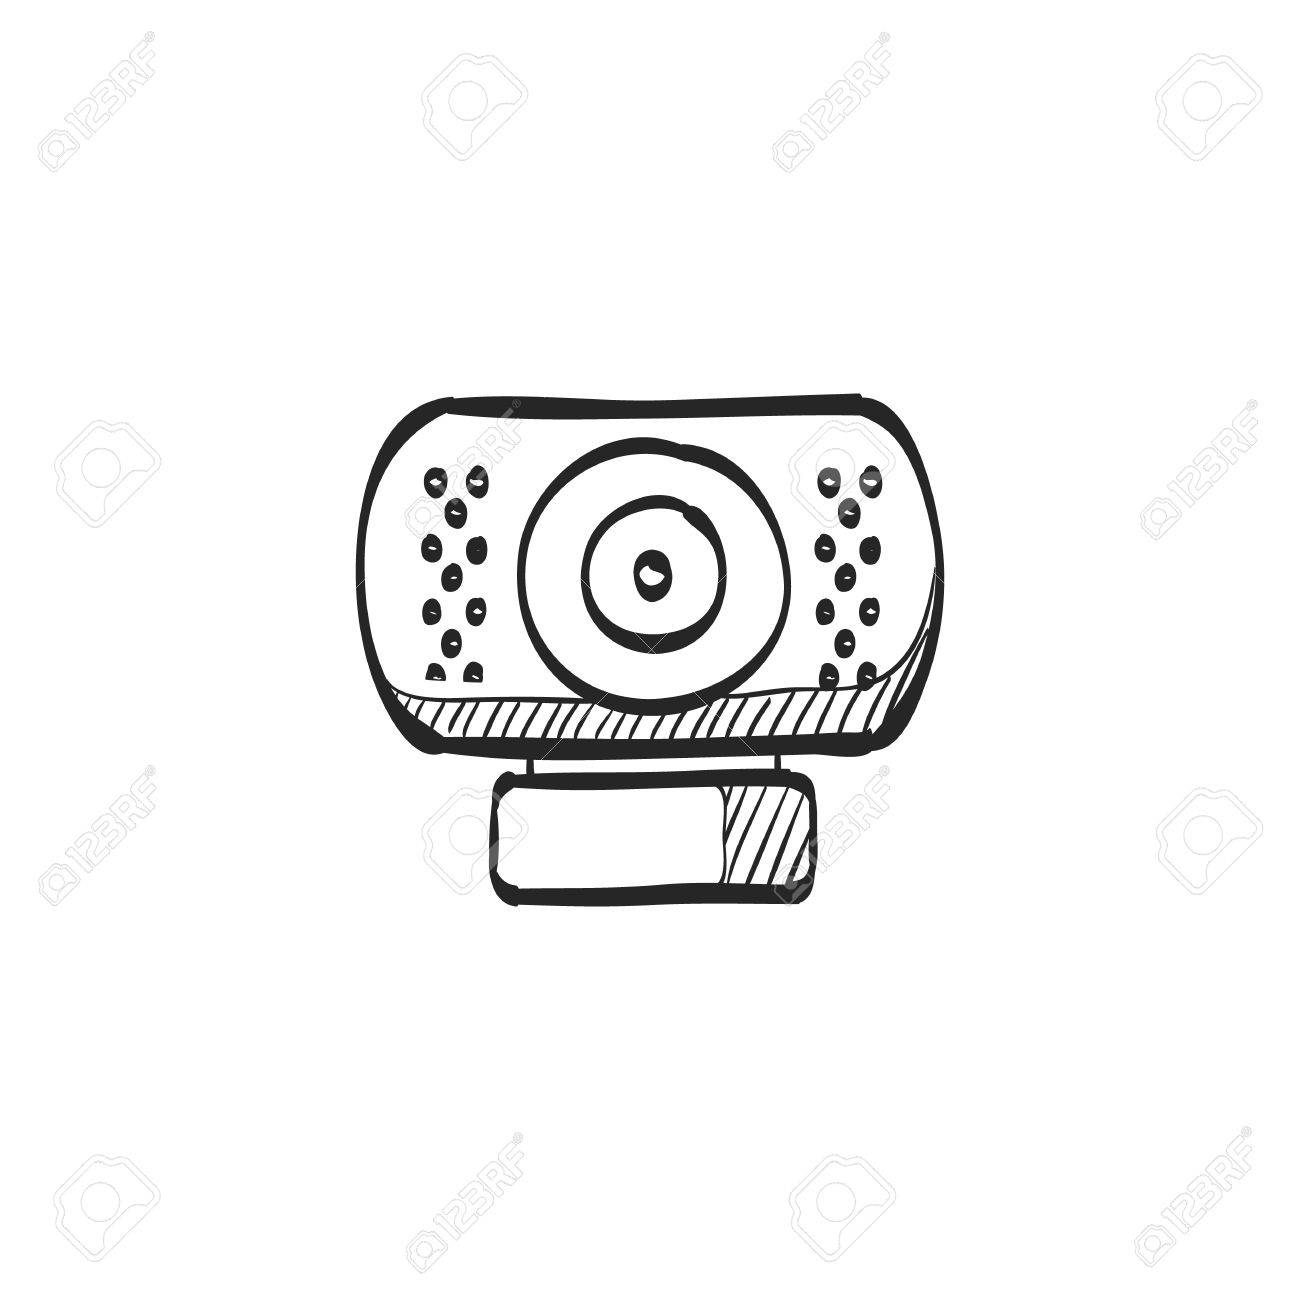 Webcam Icon In Doodle Sketch Lines Computer Internet Connection Royalty Free Cliparts Vectors And Stock